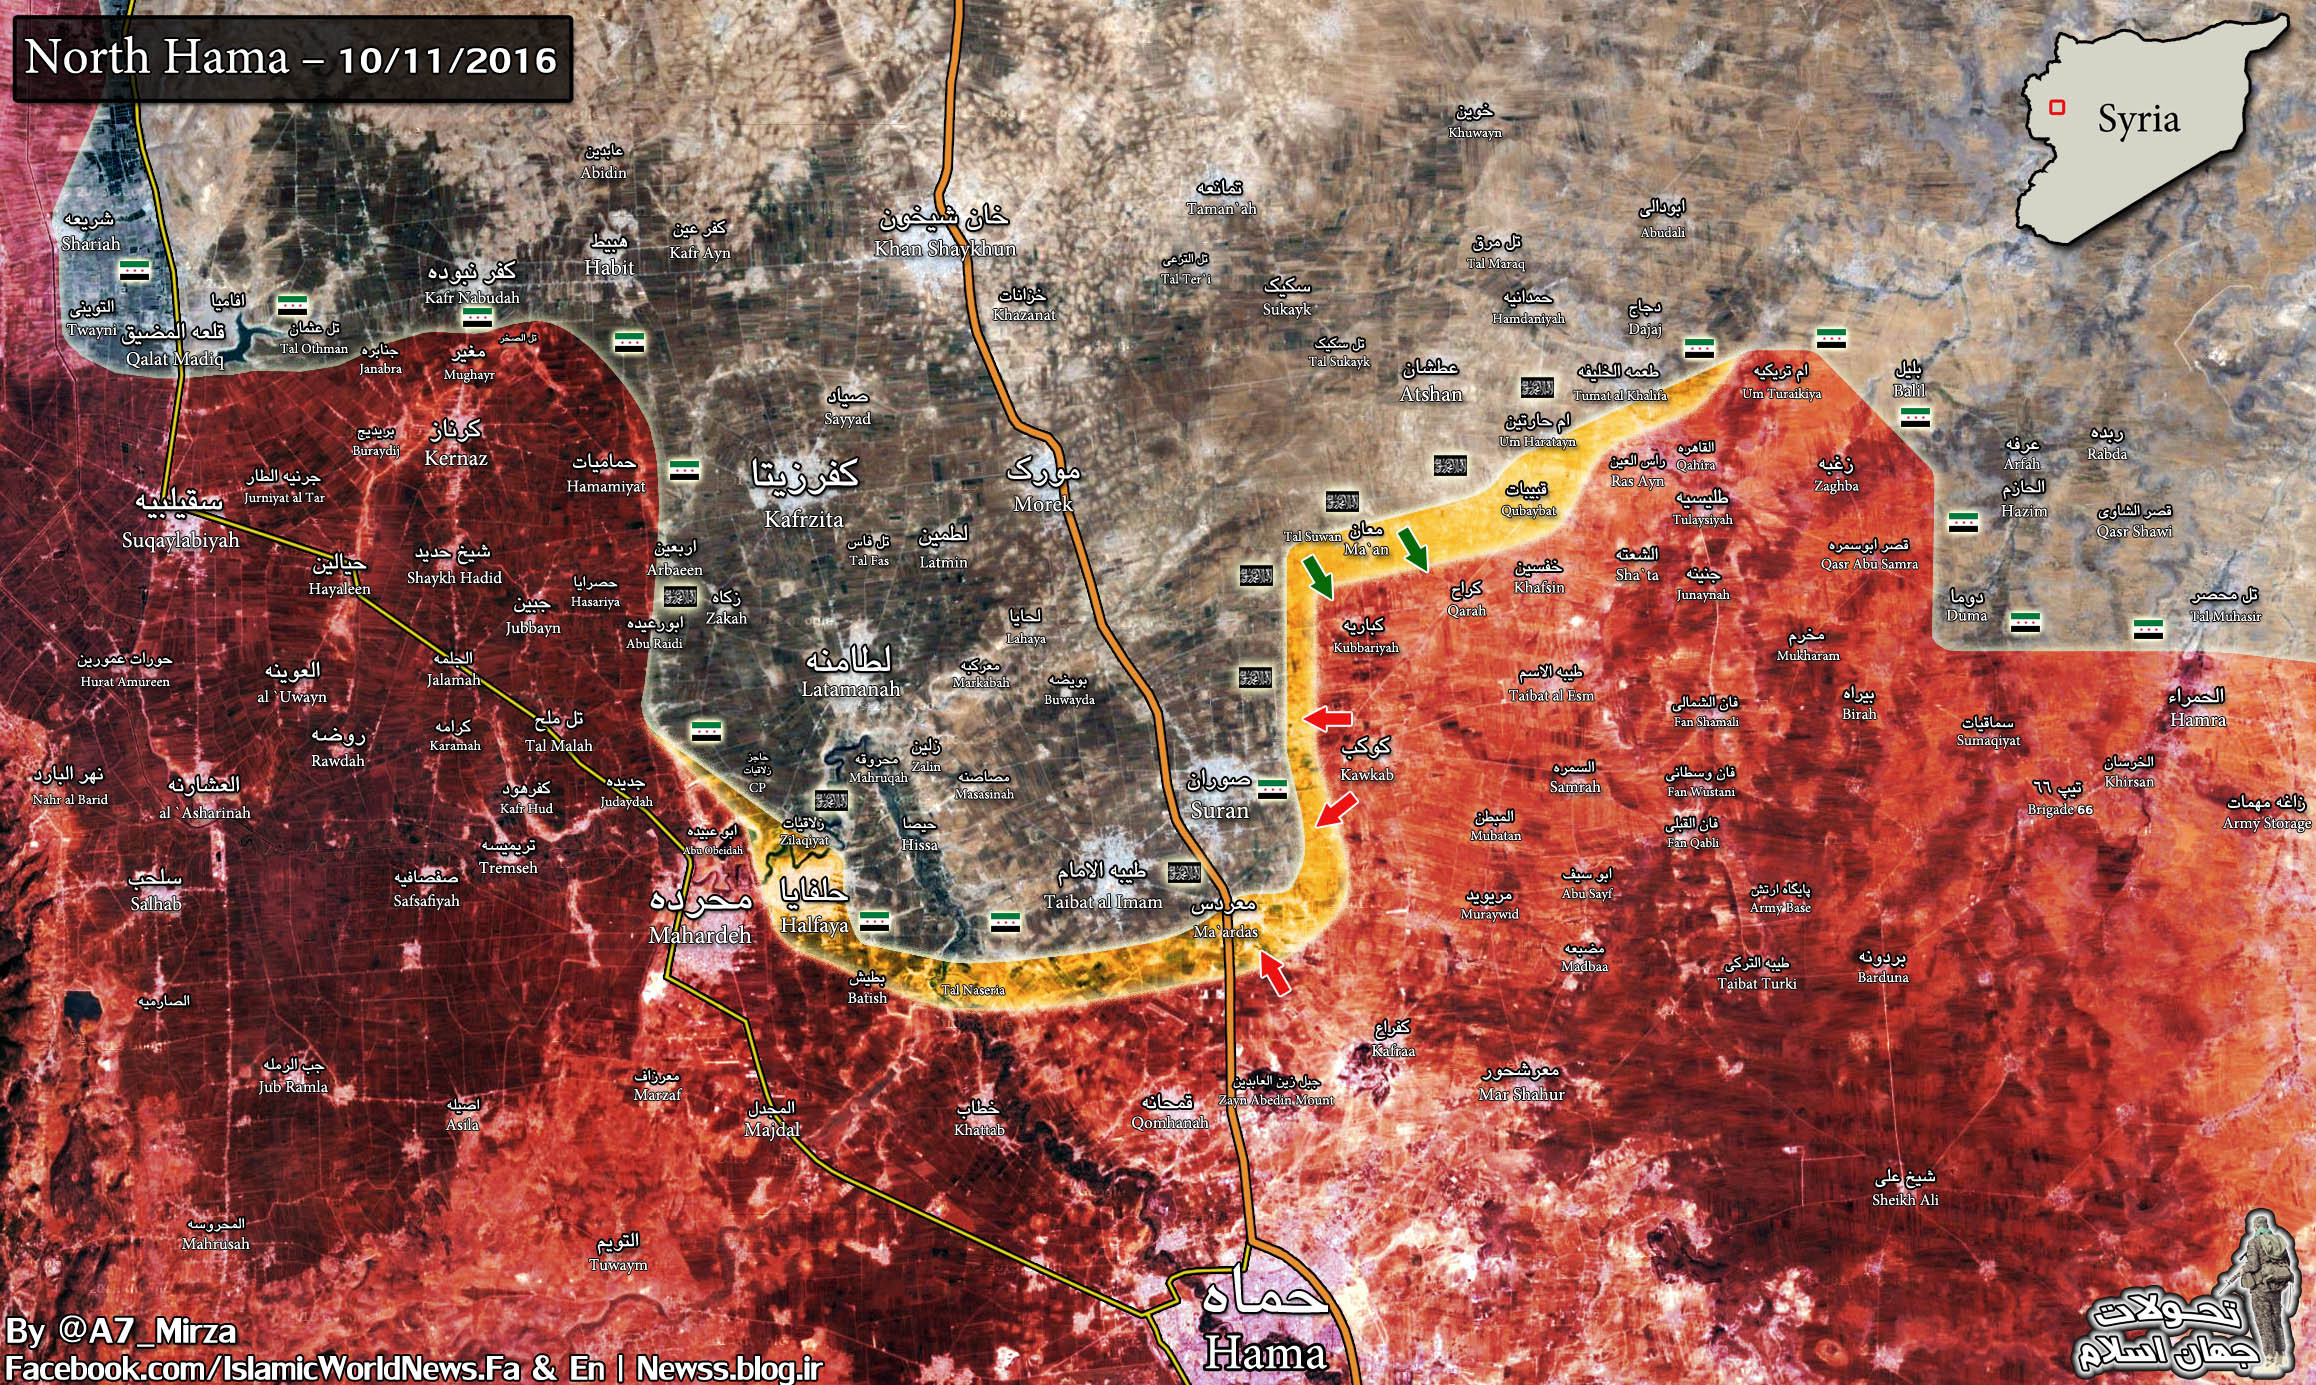 60 Terrorists Dead in Failed Counter-Attack on Syrian Army in Hama